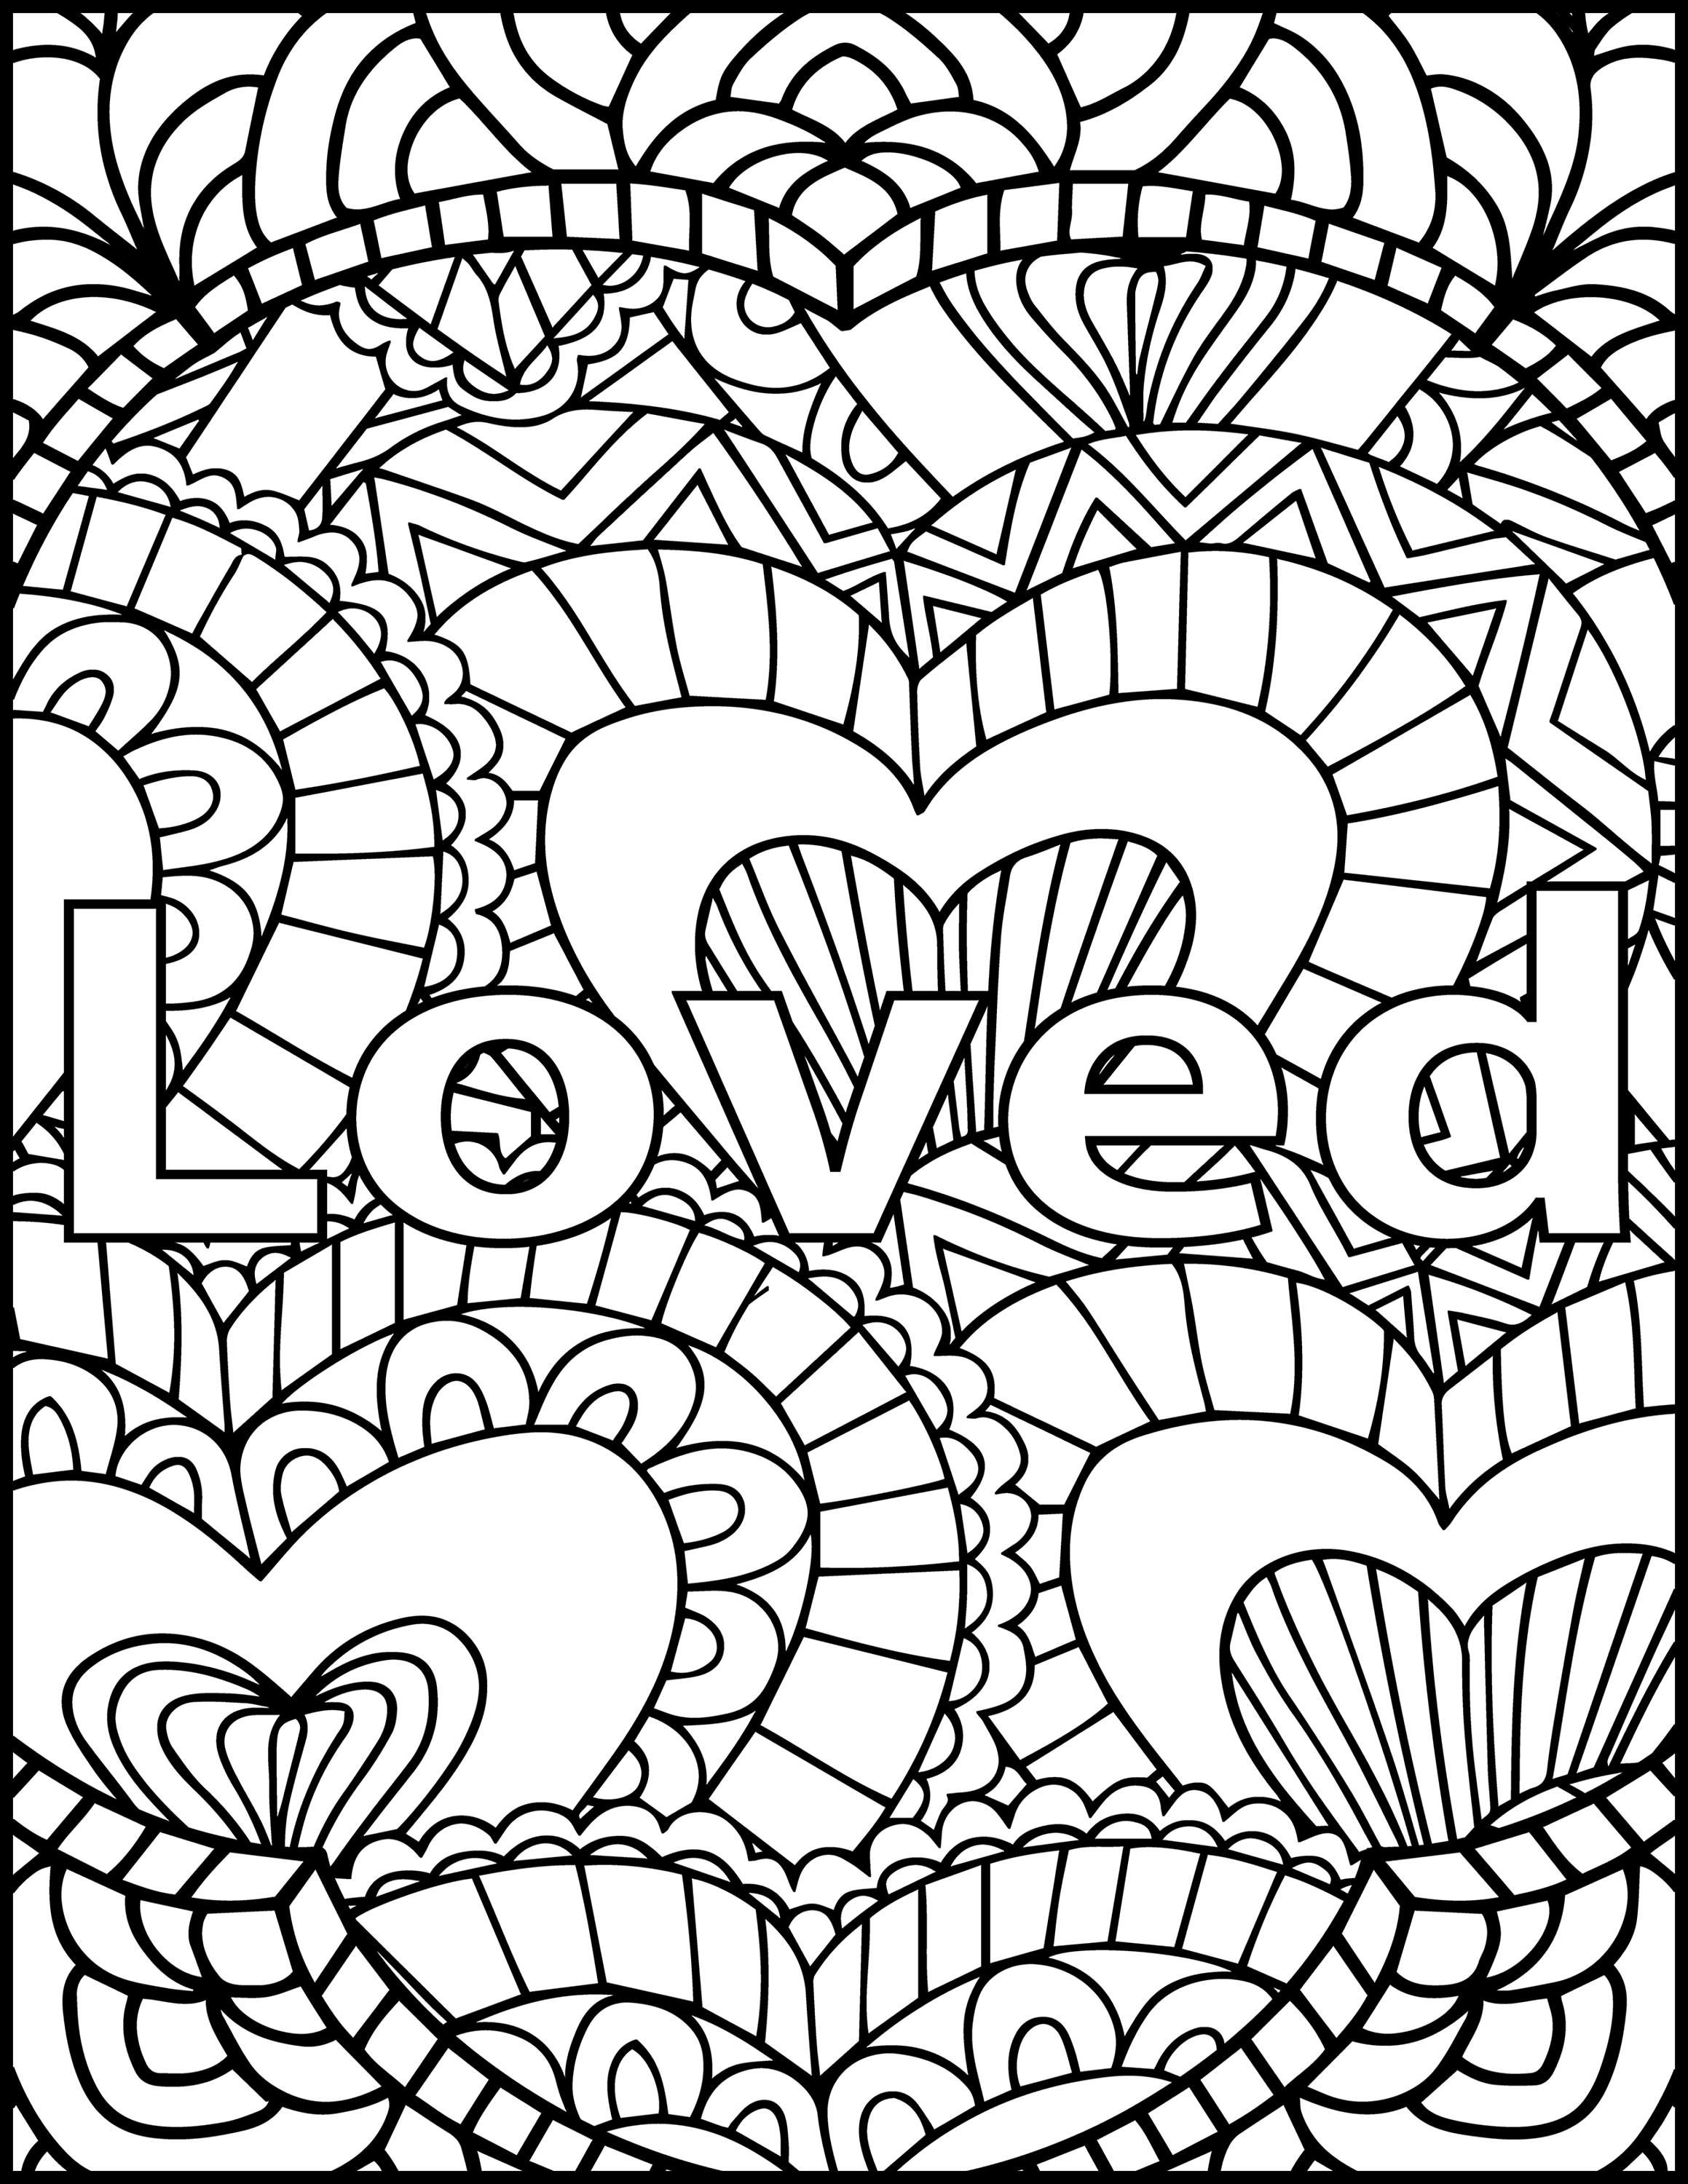 Coloring pages inspirational - I Am Loved Adult Coloring Page Inspiring Message Coloring Page Positive Coloring Page For Adults Gift Coloring Page Printable Page